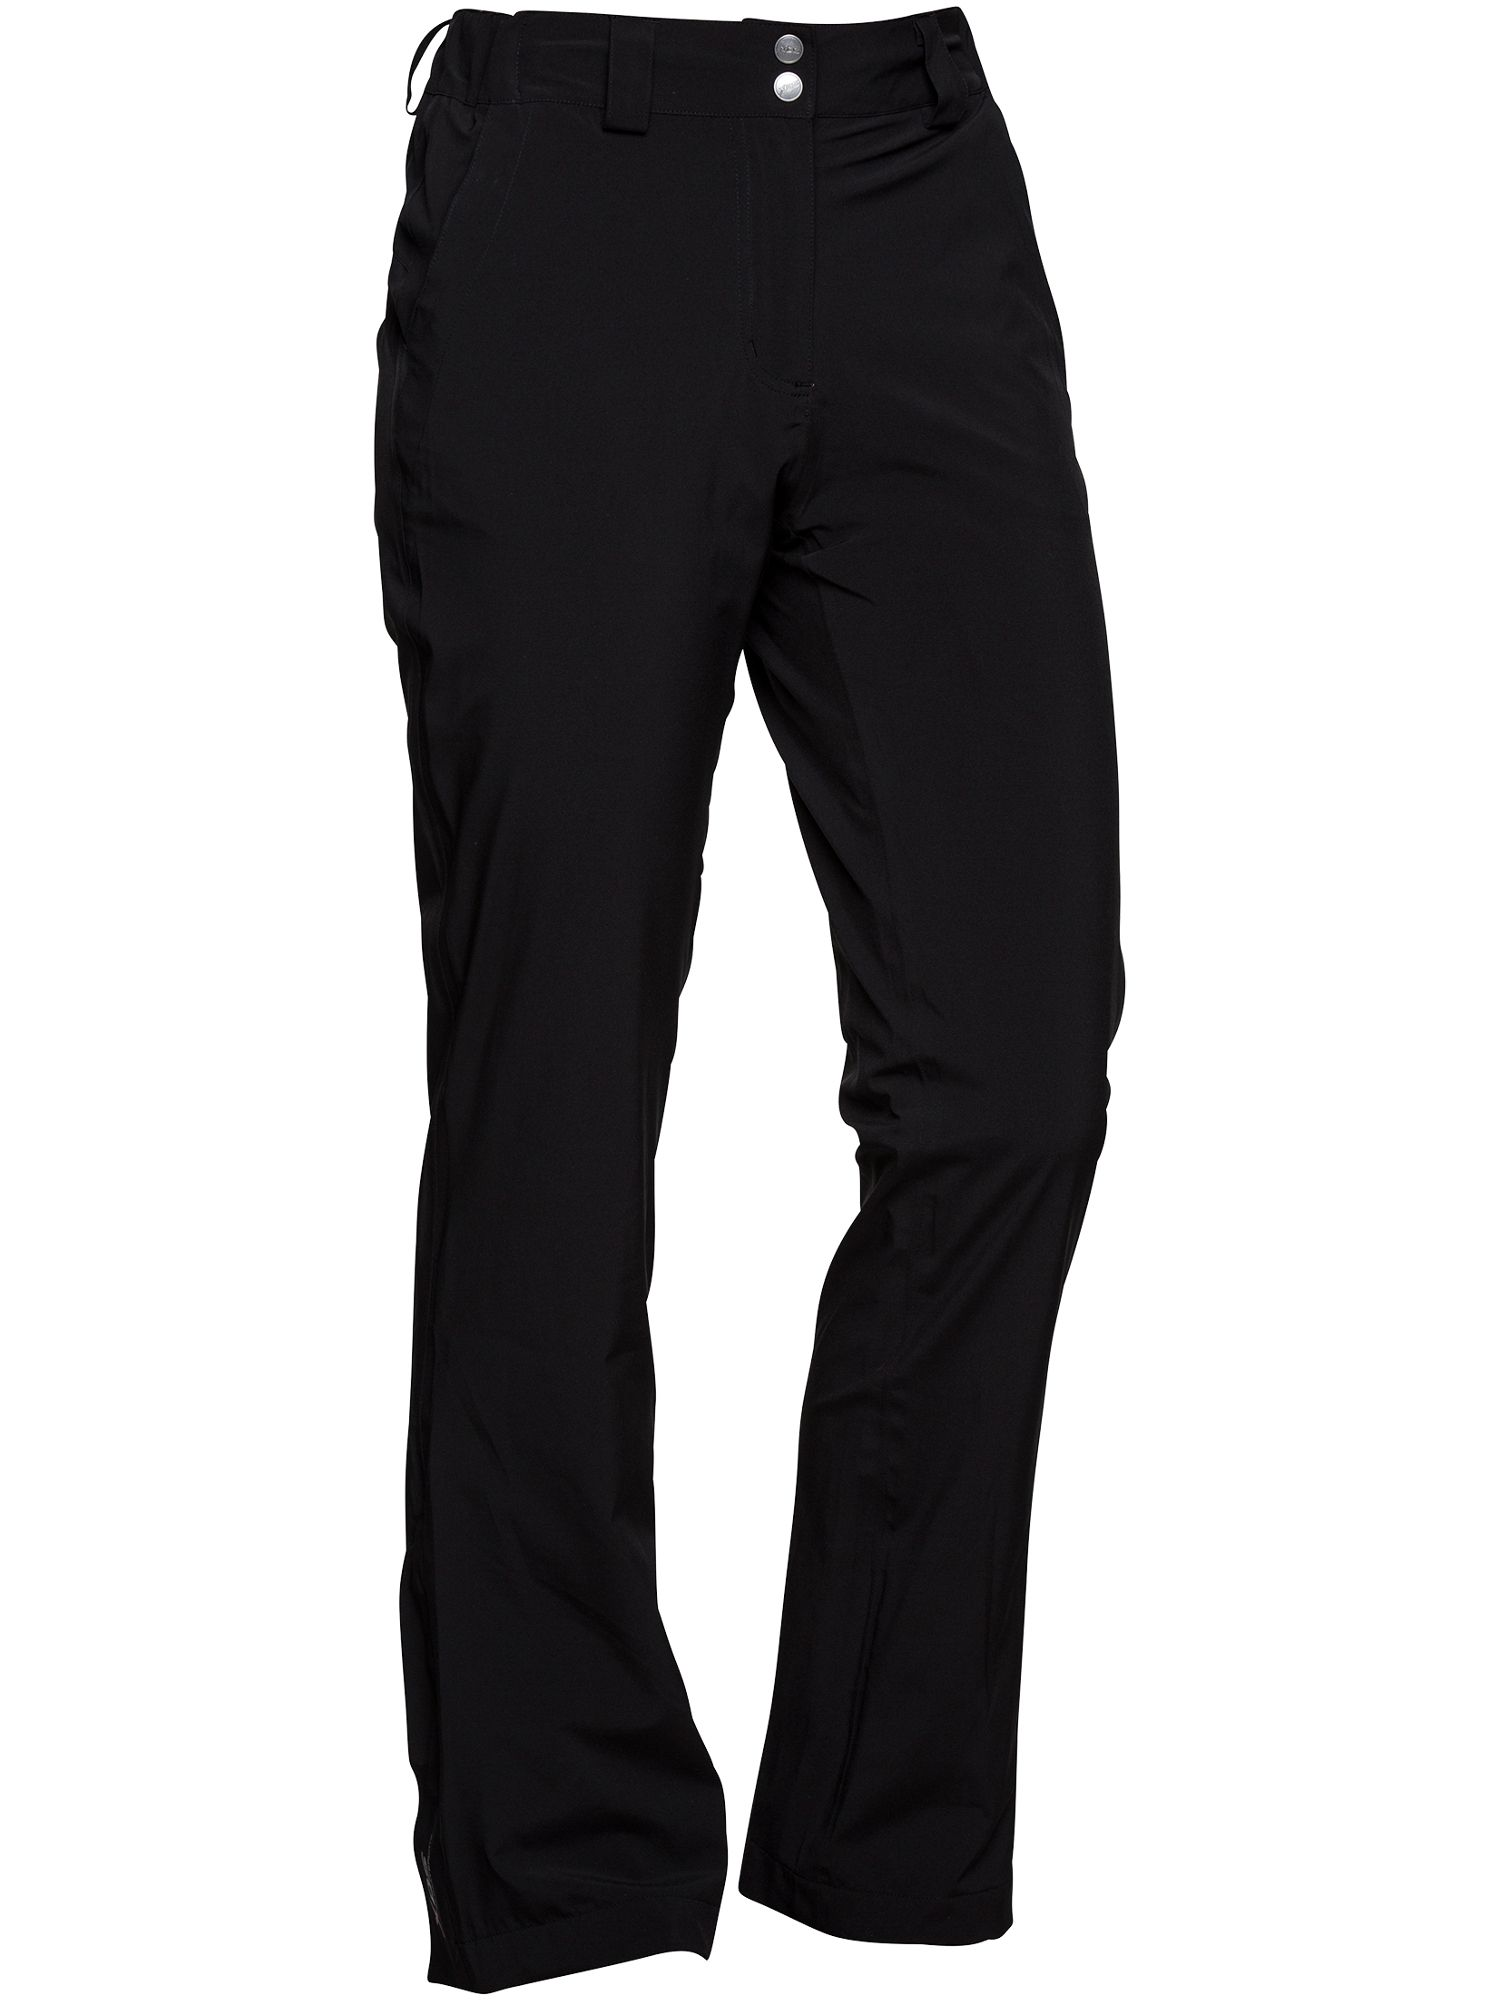 Daily Sports Raina Trousers, Black